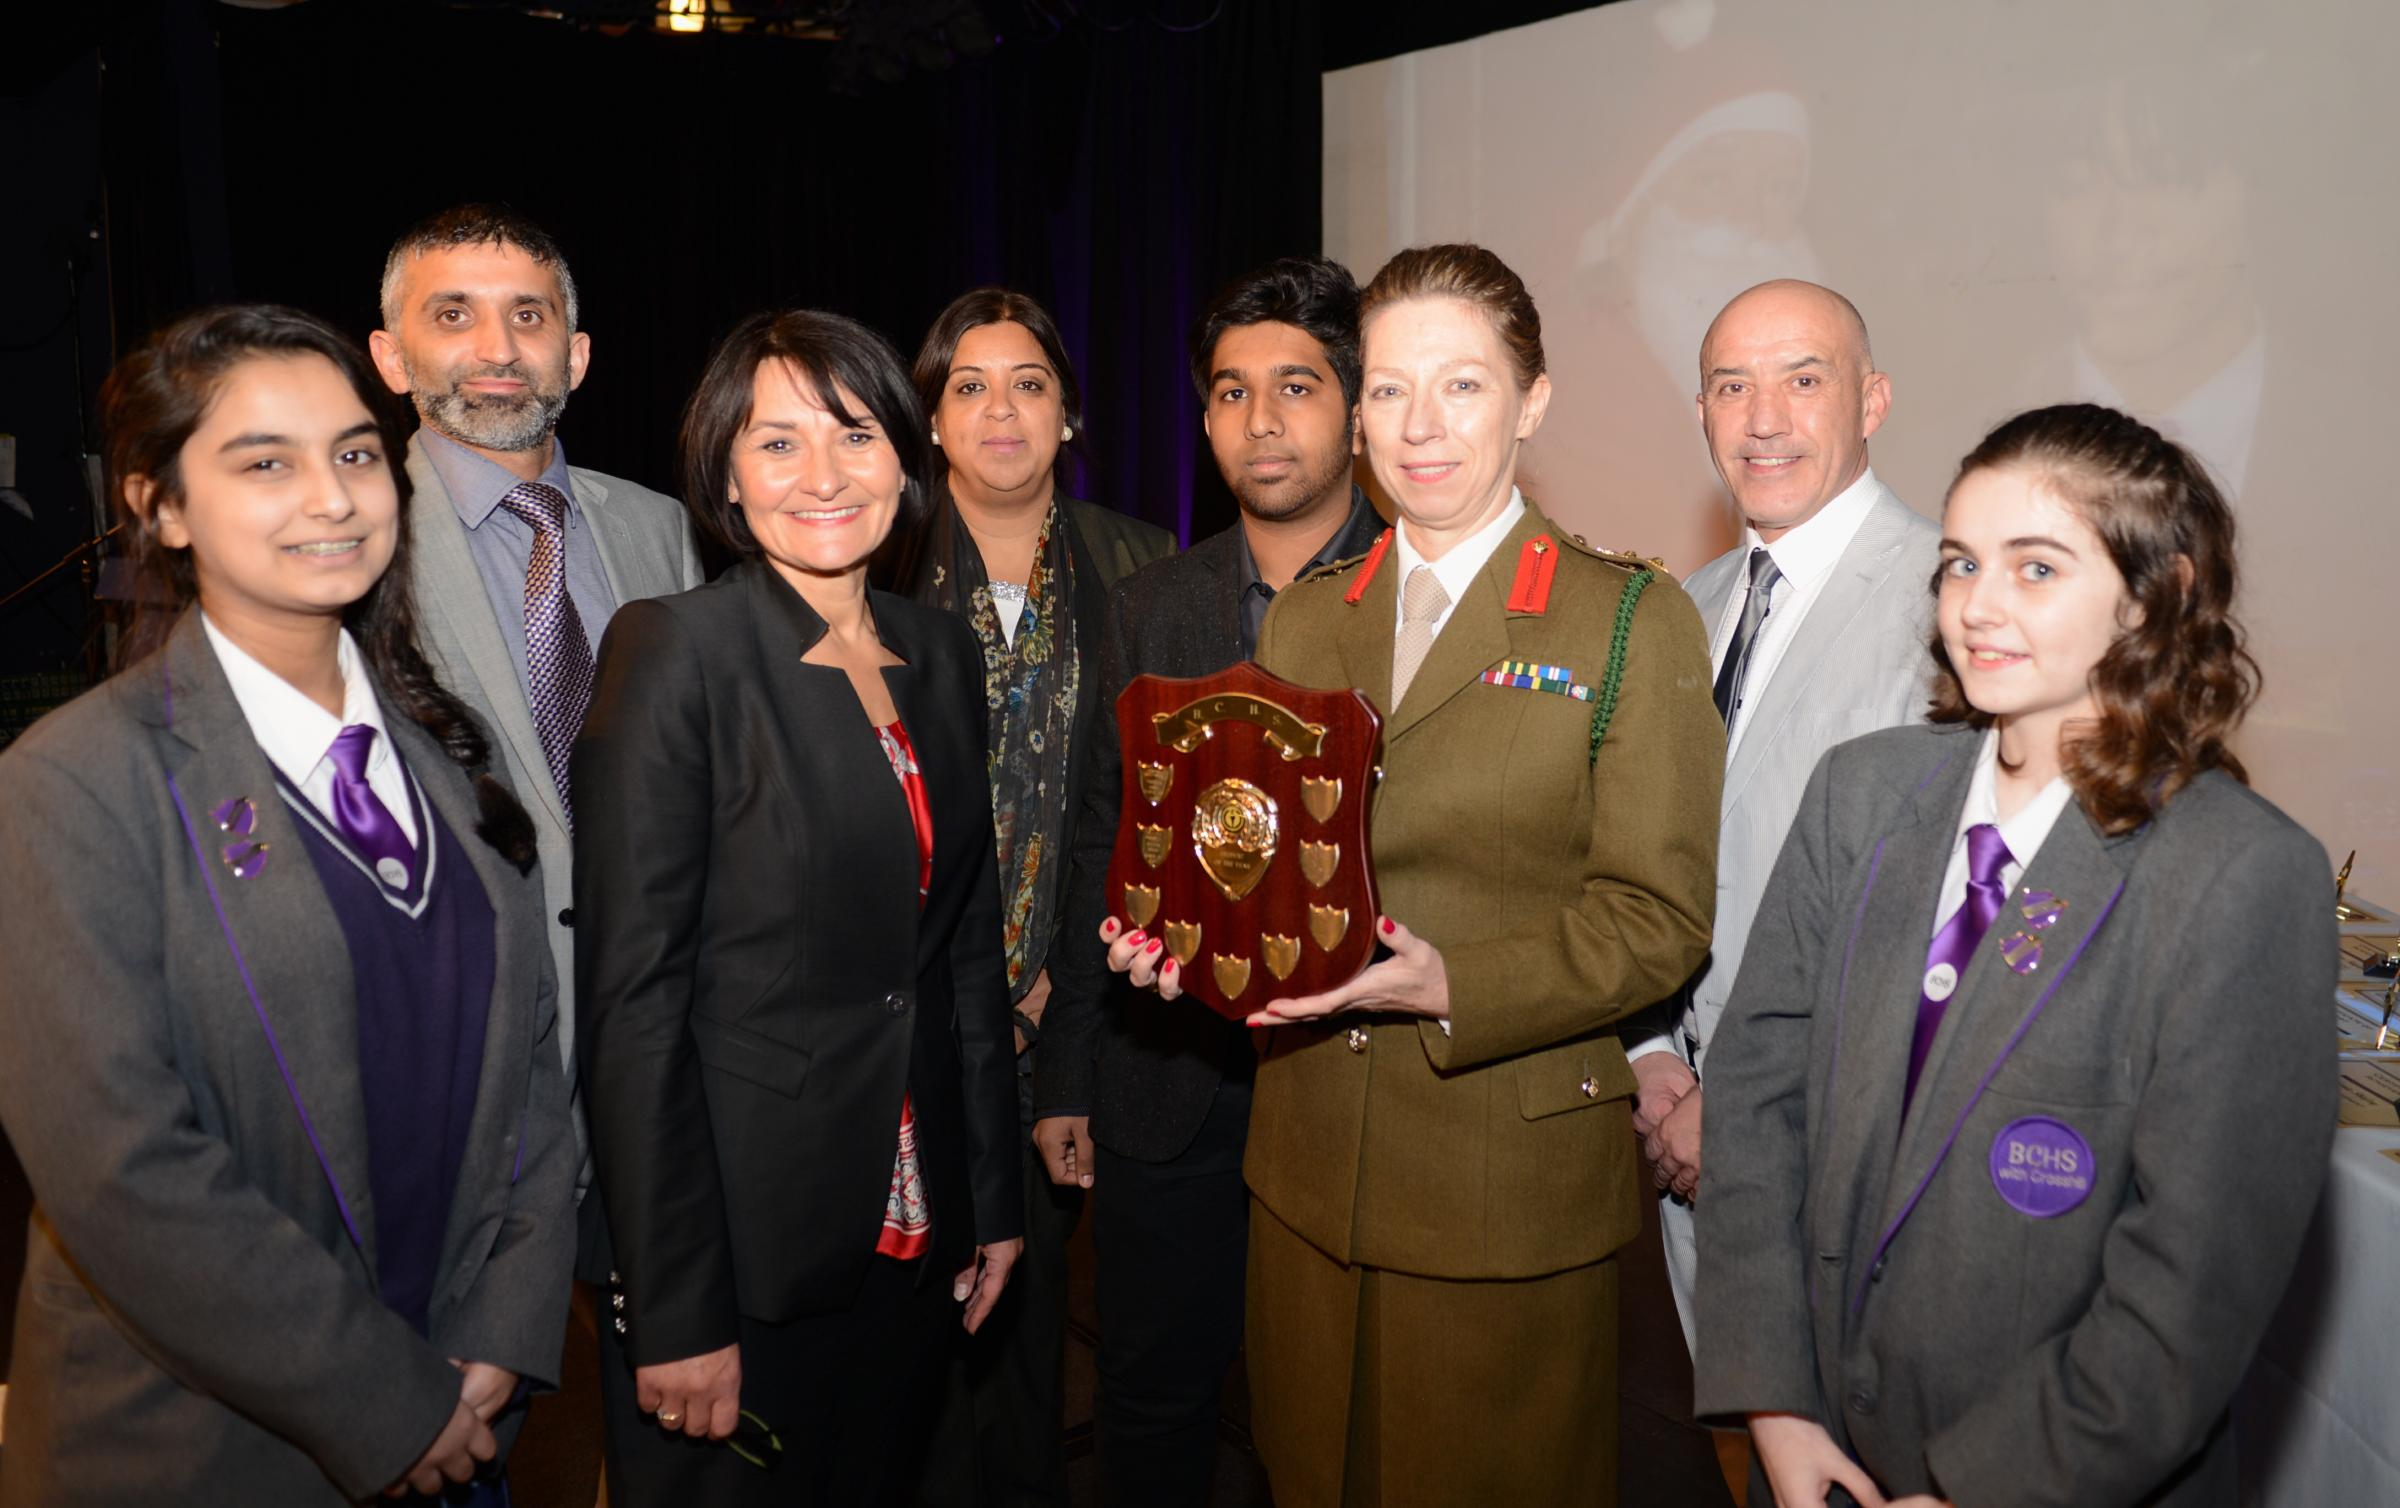 GUESTS: Maryam Khan, deputy headteacher Majid Ditta, headteacher Diane Atkinson, deputy headteacher Shanaz Hussain, last year's head boy Moaz Sidat, guest speaker Col Myszka Guzkowska, head of year Gary Chinery and deputy head girl Lucy Fletcher